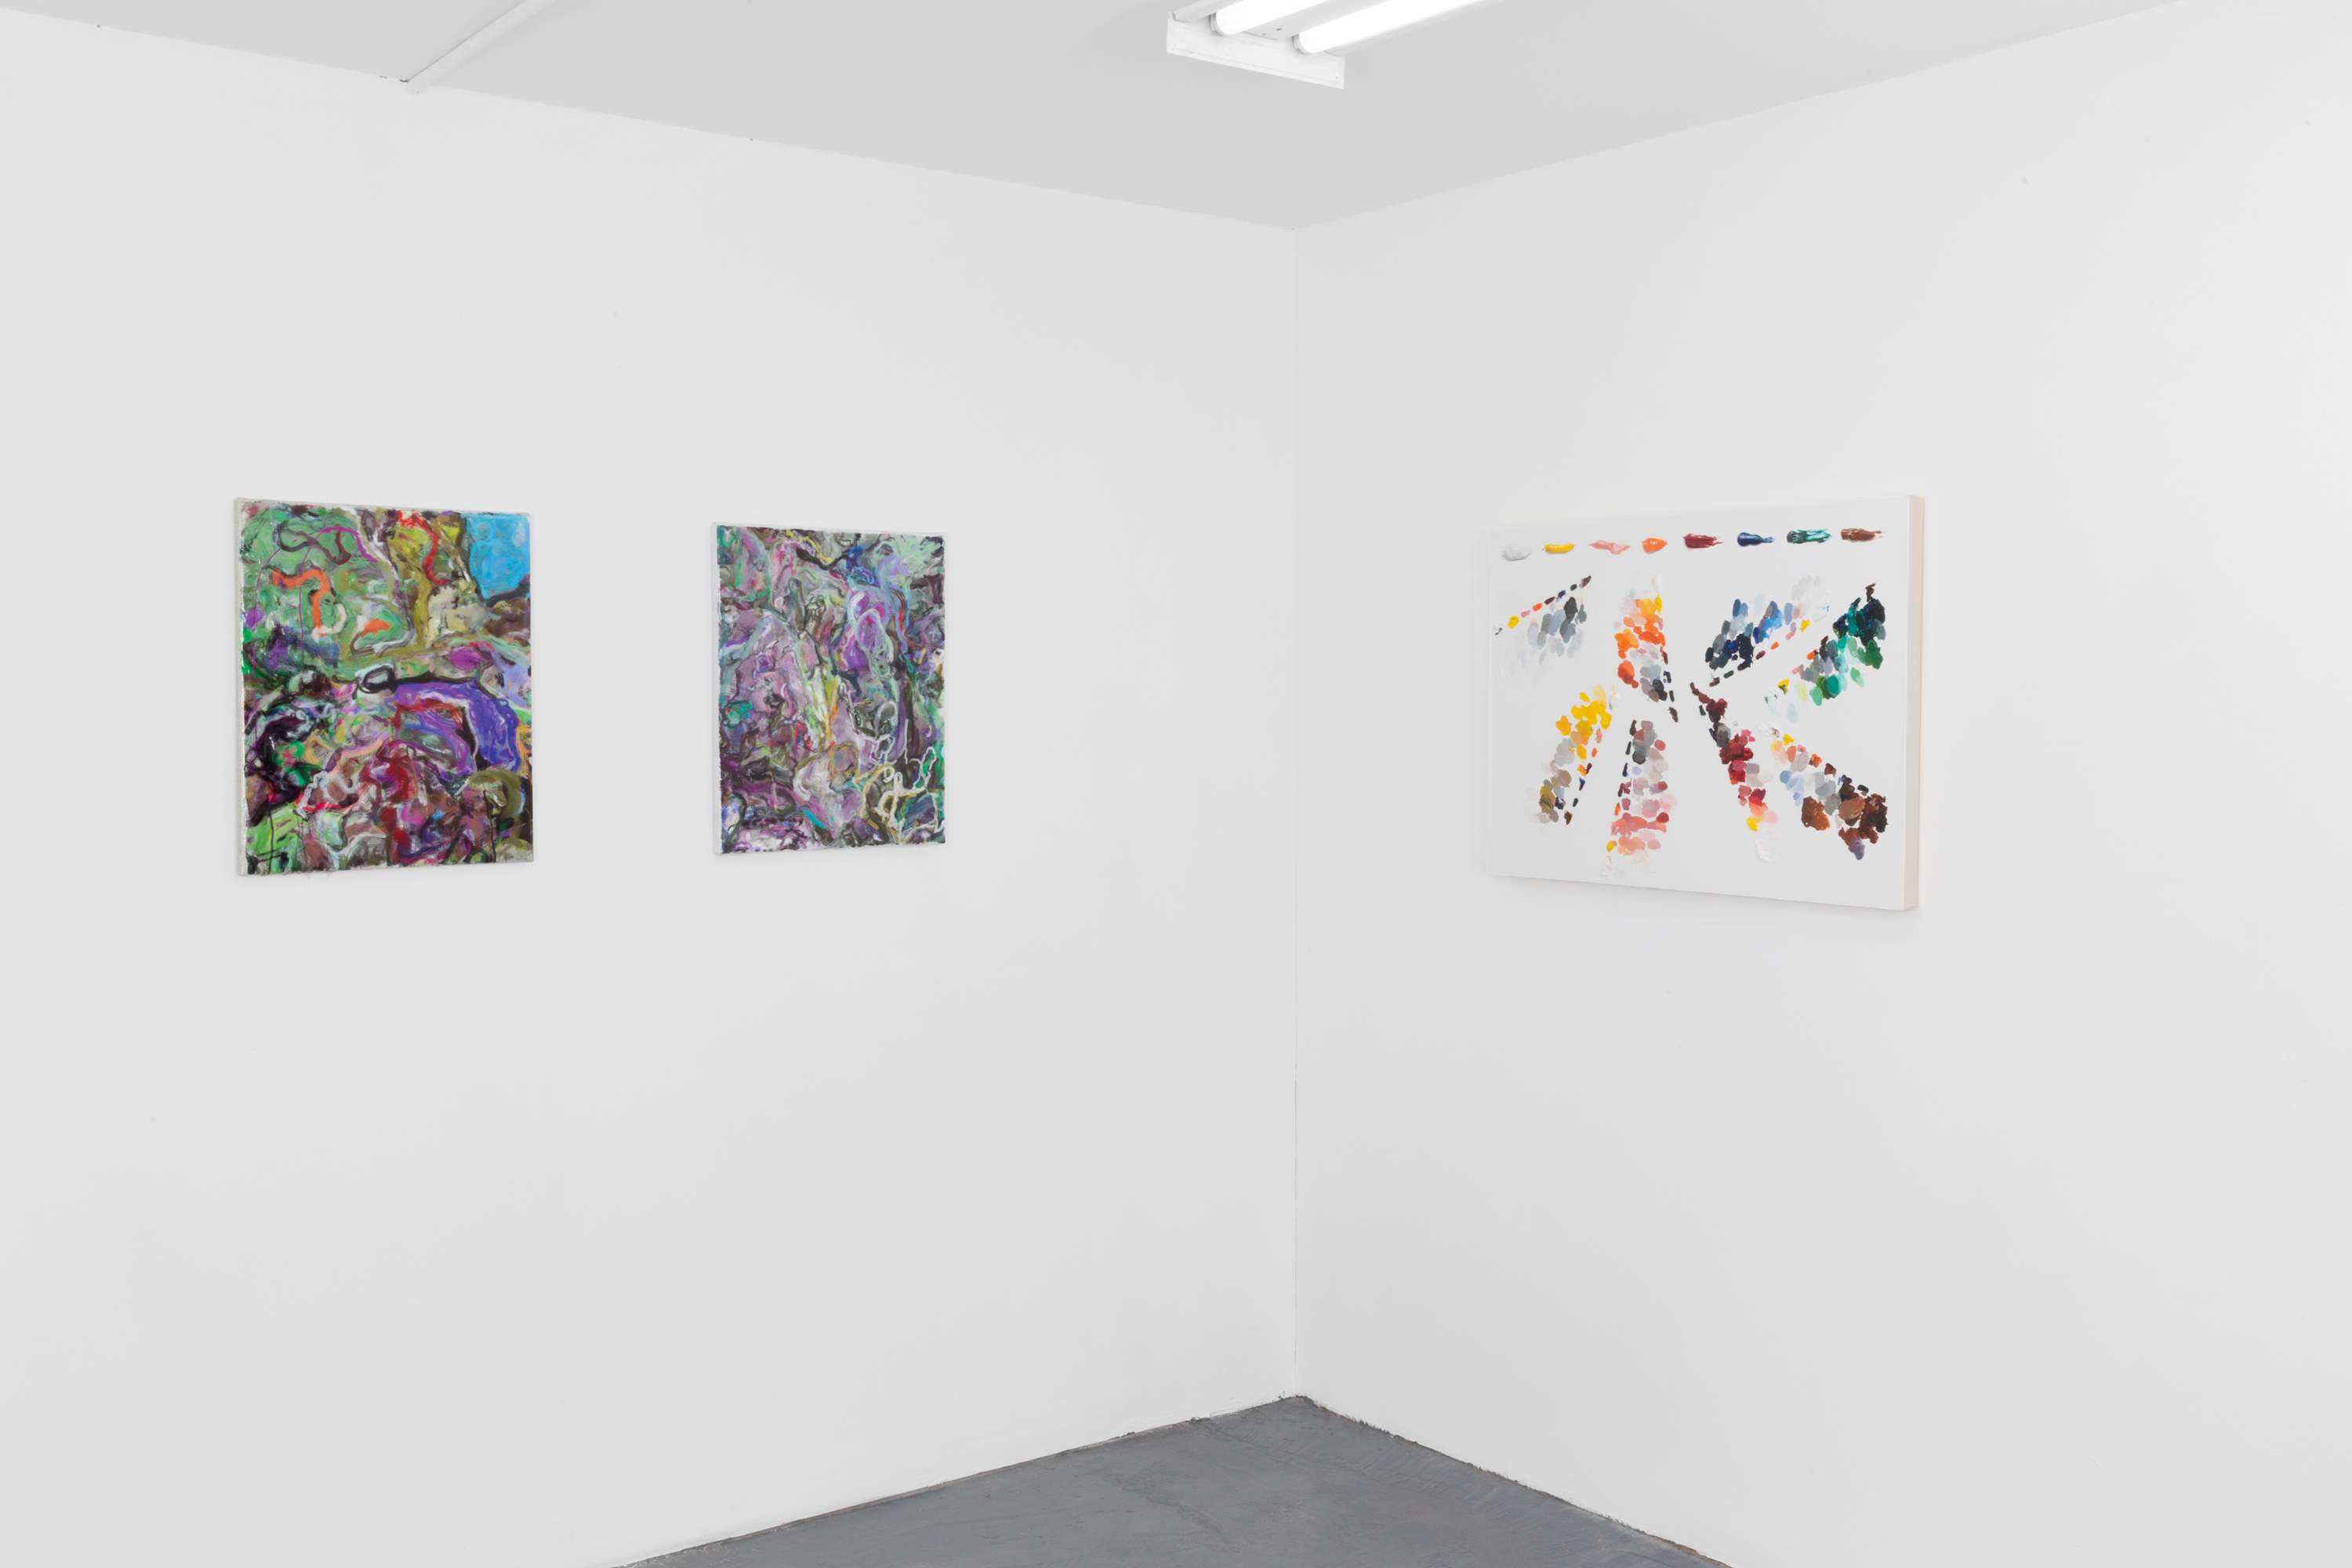 Ekphrasis, Conor Backman, Cynthia Daignault with Matt Hansel, & Siebren Versteeg (Installation view)